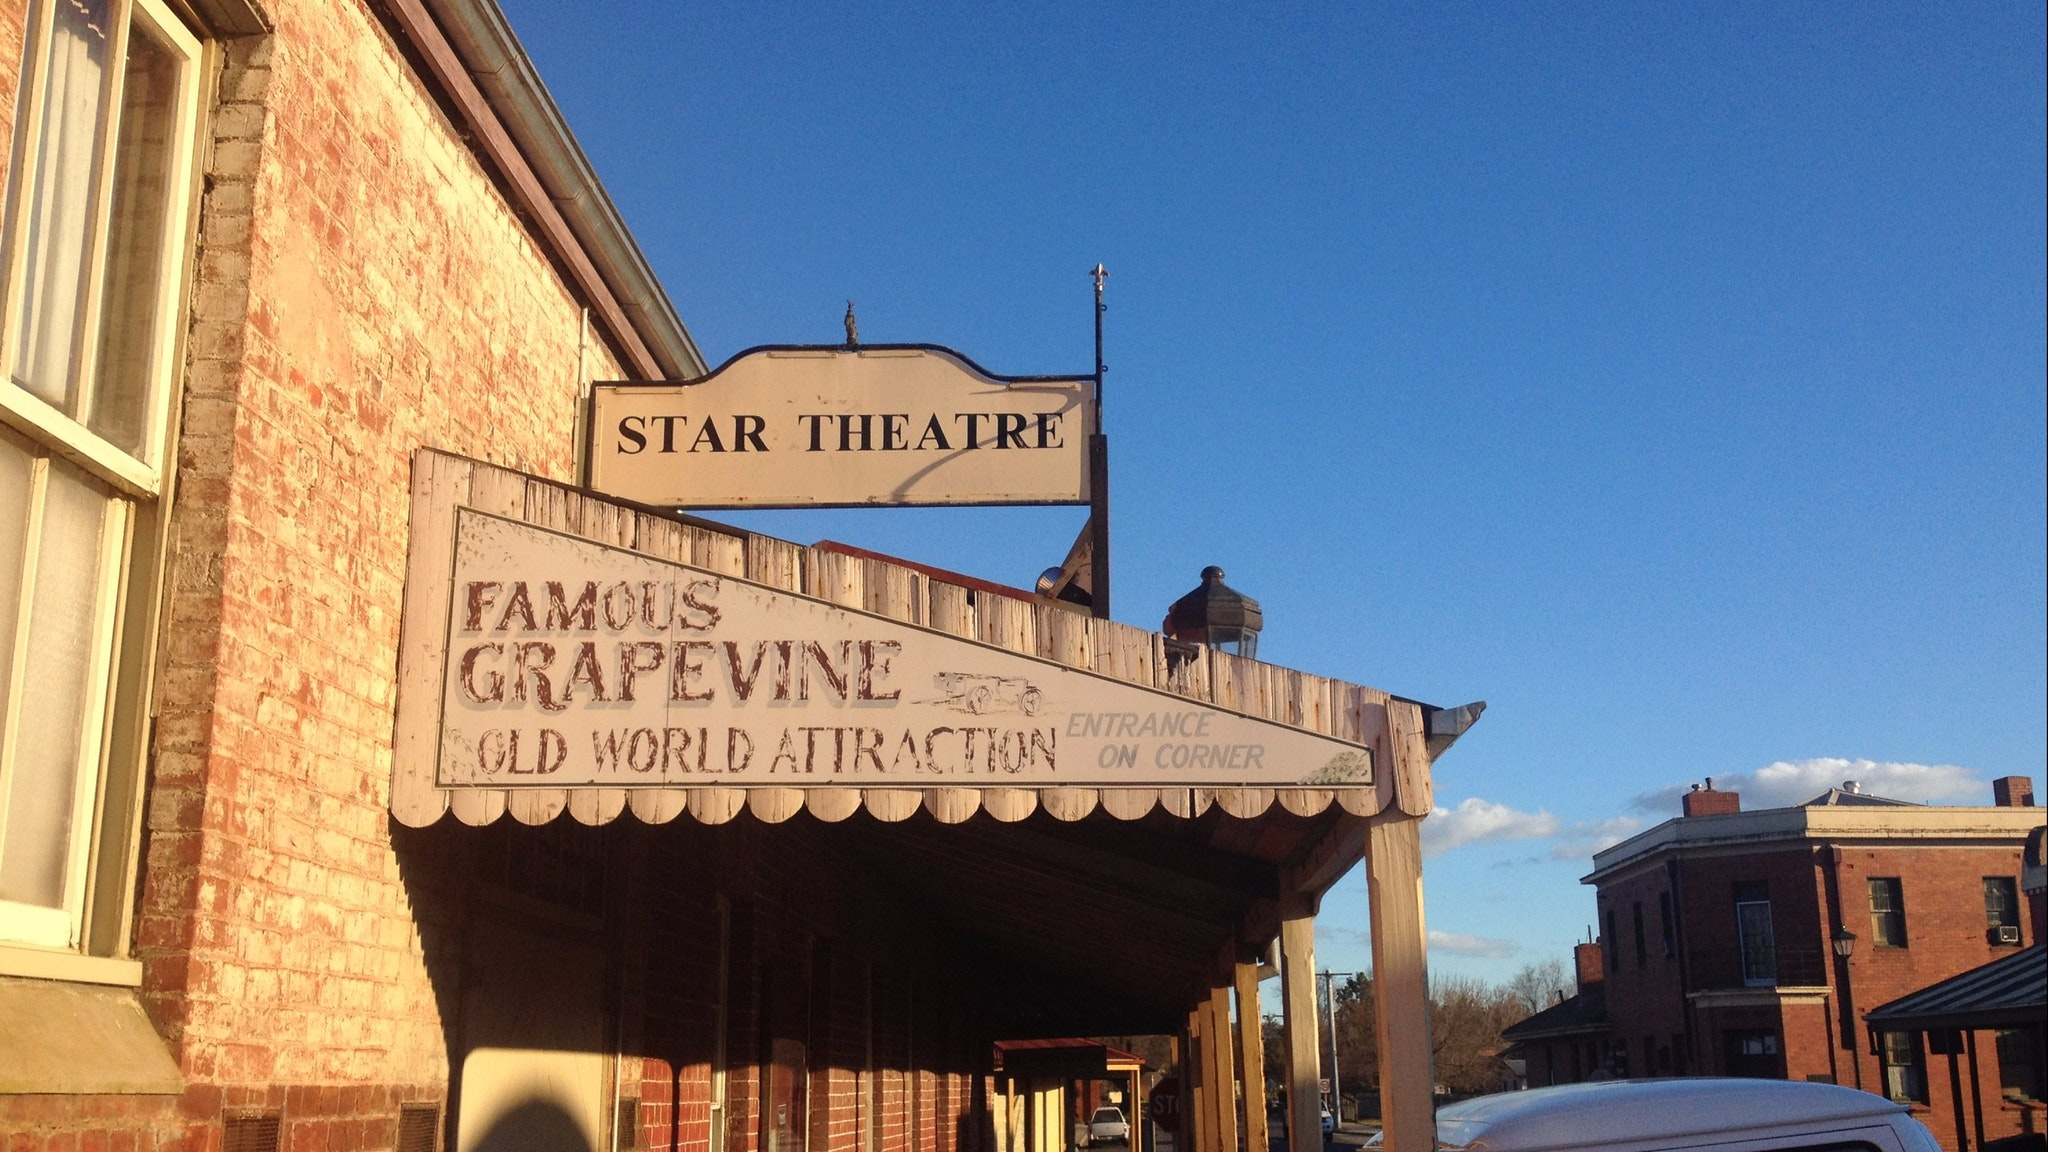 Star Theatre in Chiltern is where they show classic Australian films